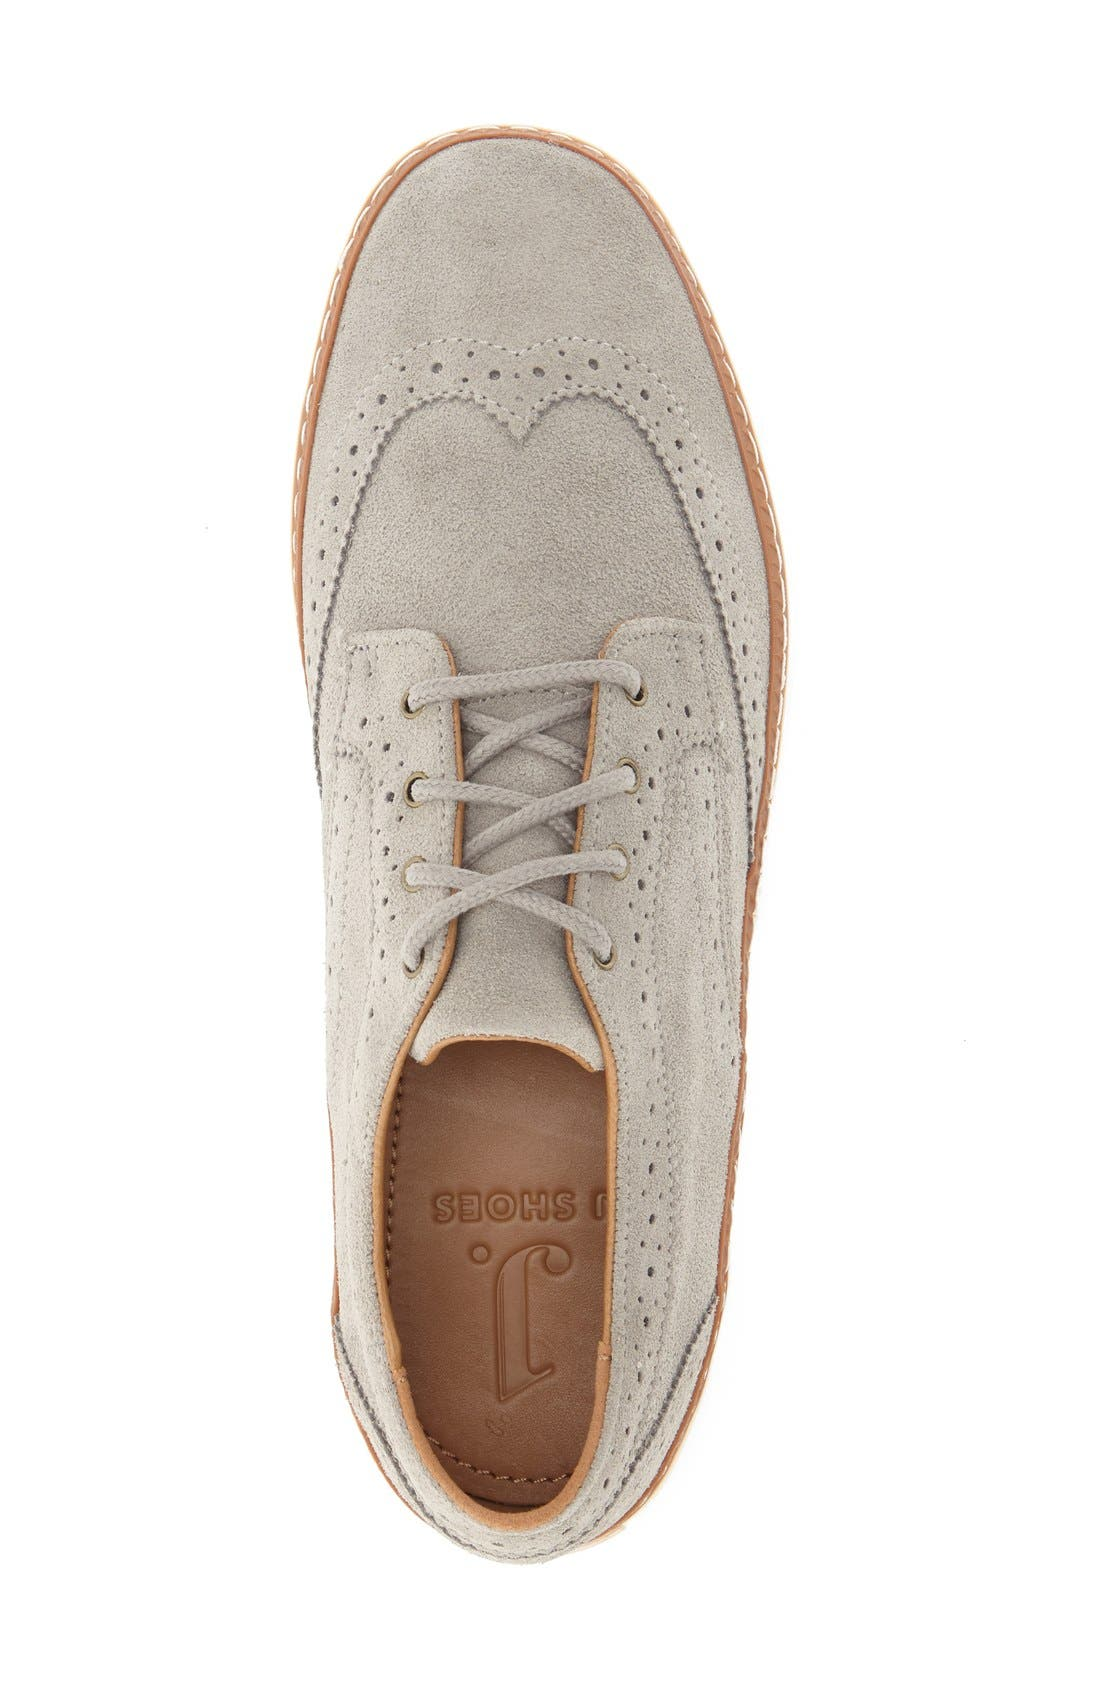 'Novello' Wingtip Sneaker,                             Alternate thumbnail 2, color,                             020